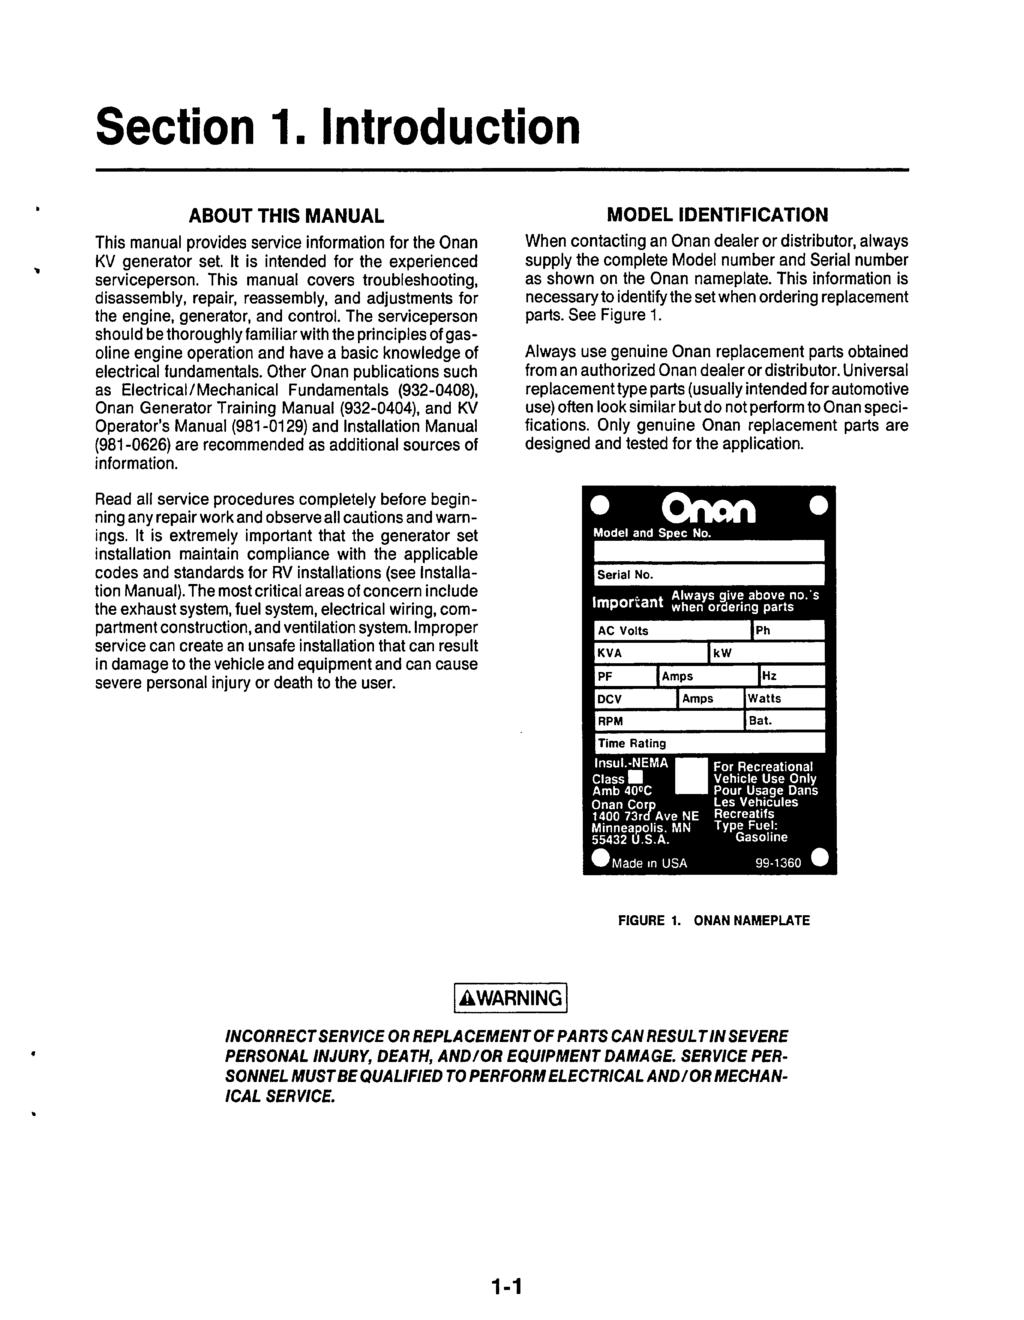 Microlite 2800 Series Pdf Onan 6 5 Rv Generator Control Wiring Diagram Section 1 Ntroduction About Ths Manual This Provides Service Information For The Kv